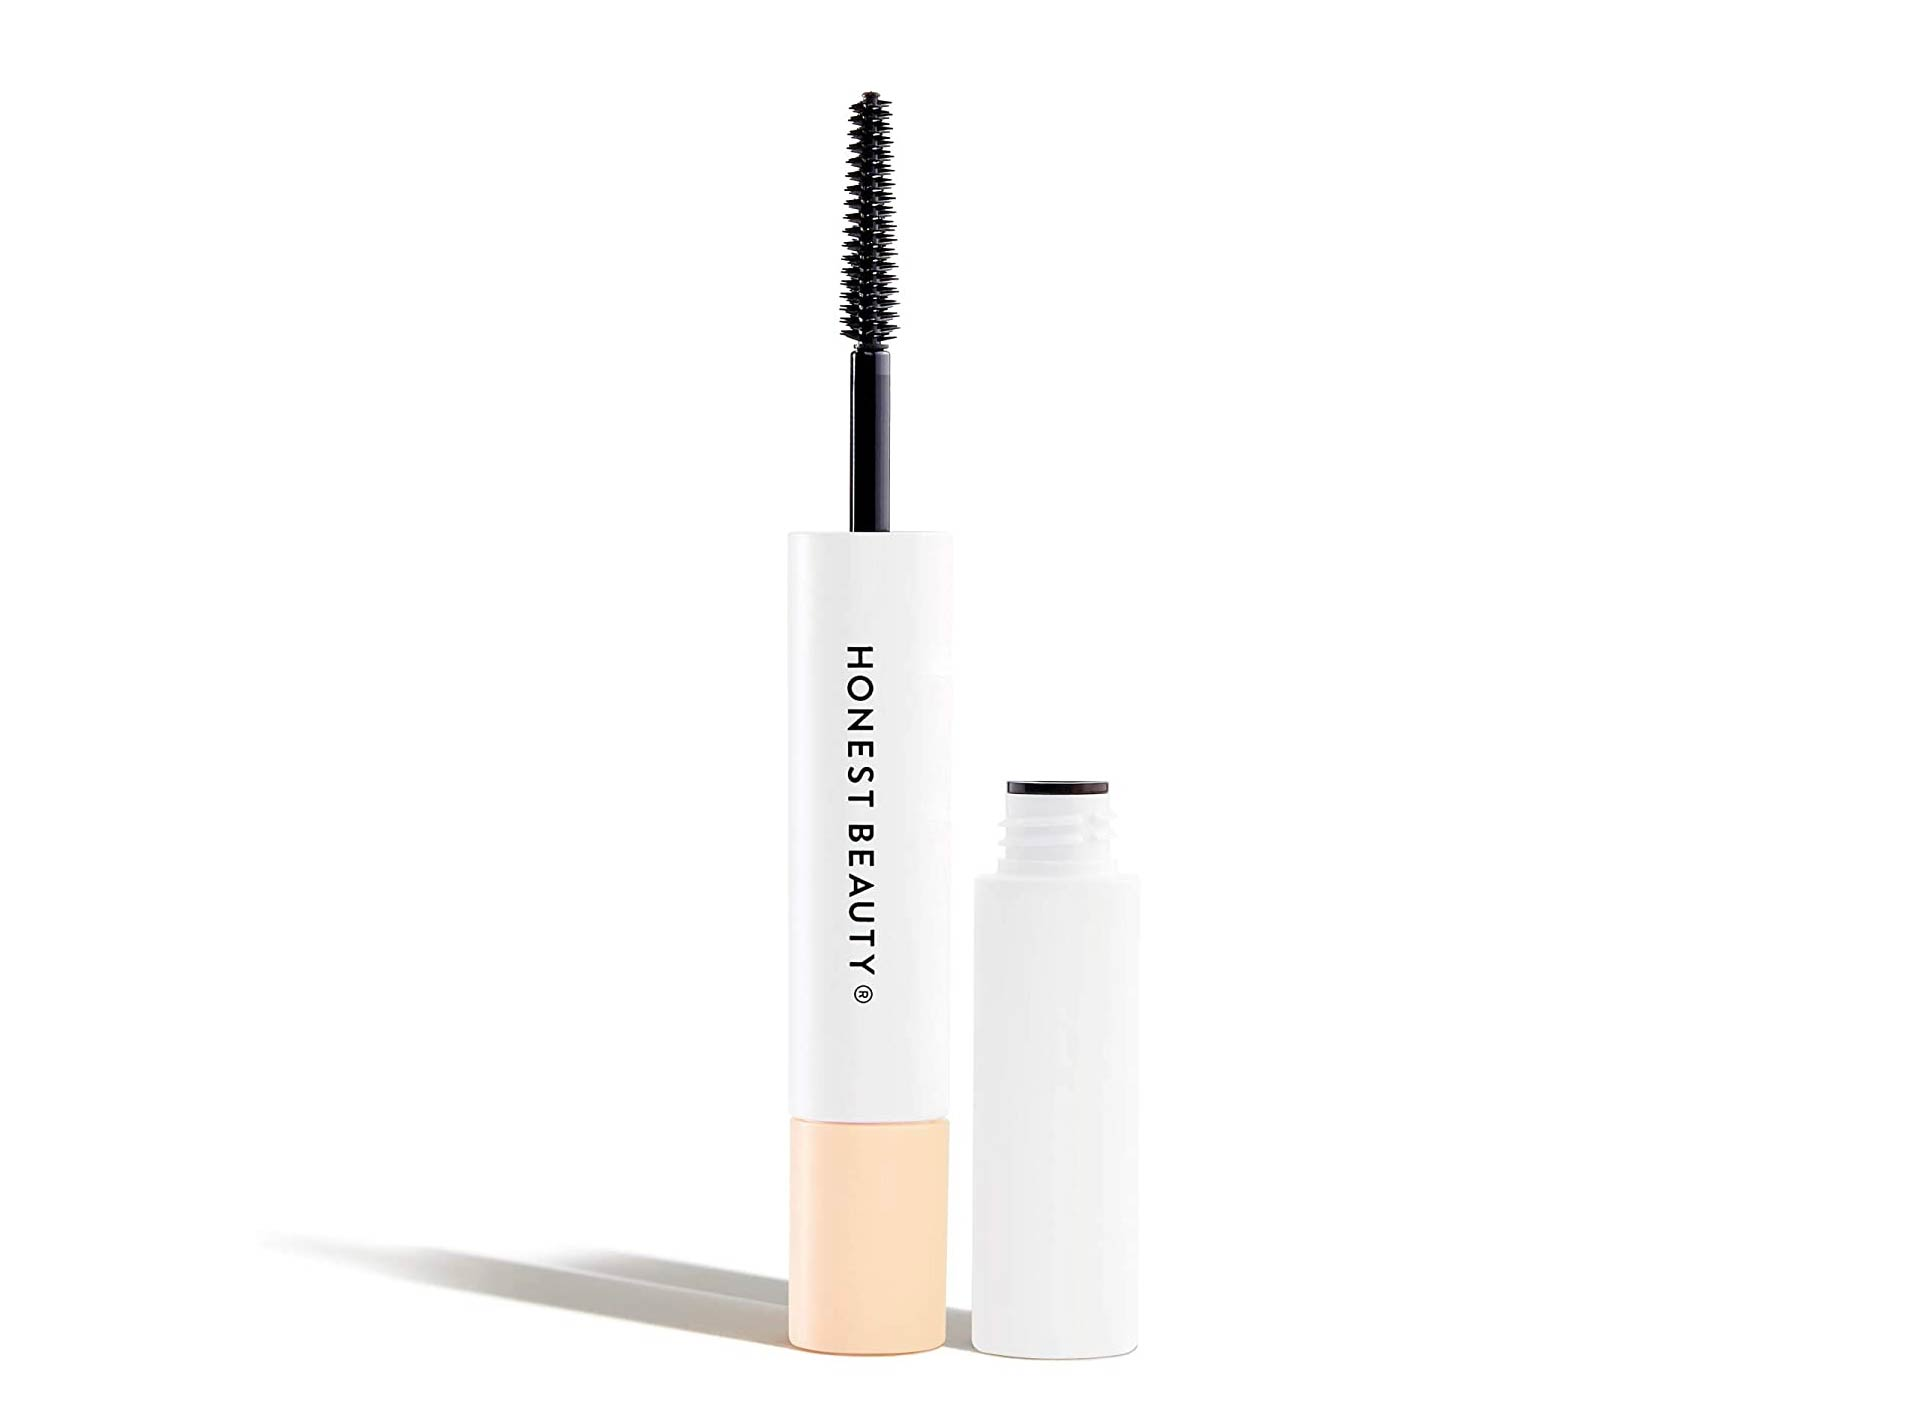 Honest Beauty Extreme Length Mascara + Lash Primer   2-in-1 Boosts Lash Length, Volume & Definition   Silicone Free, Paraben Free, Dermatologist & Ophthalmologist Tested, Cruelty Free